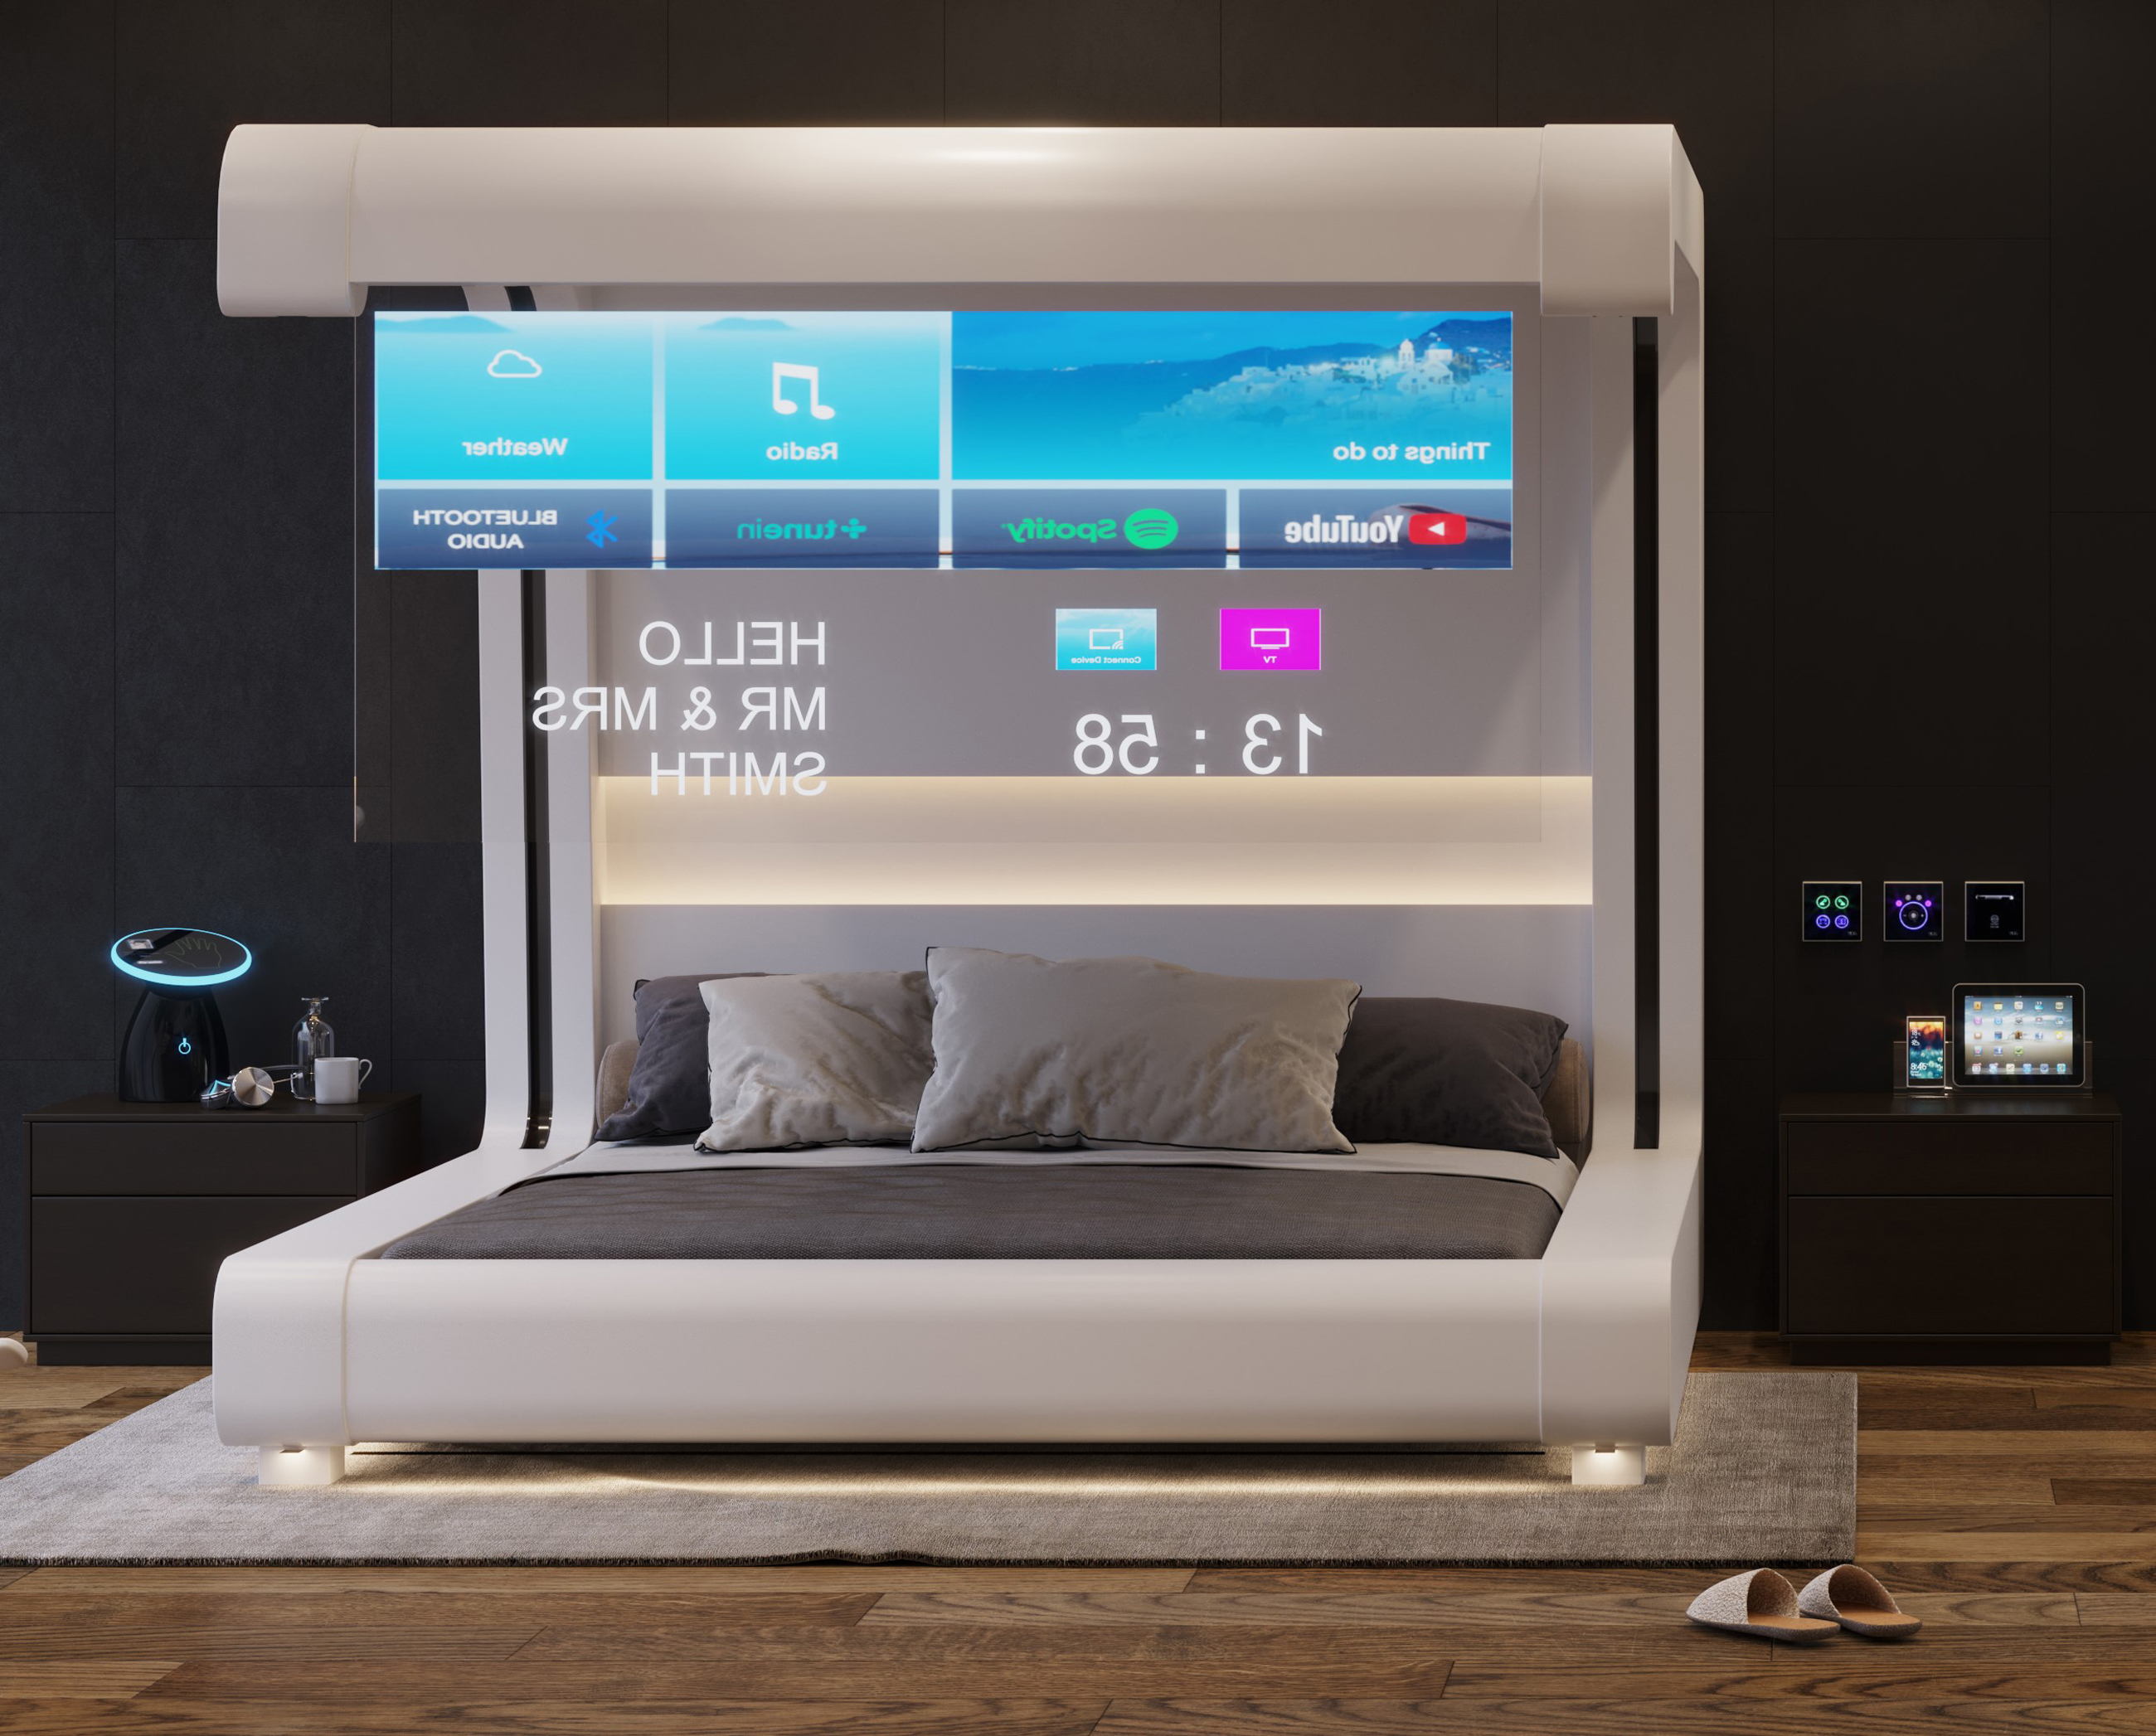 Glass TVs in future hotels